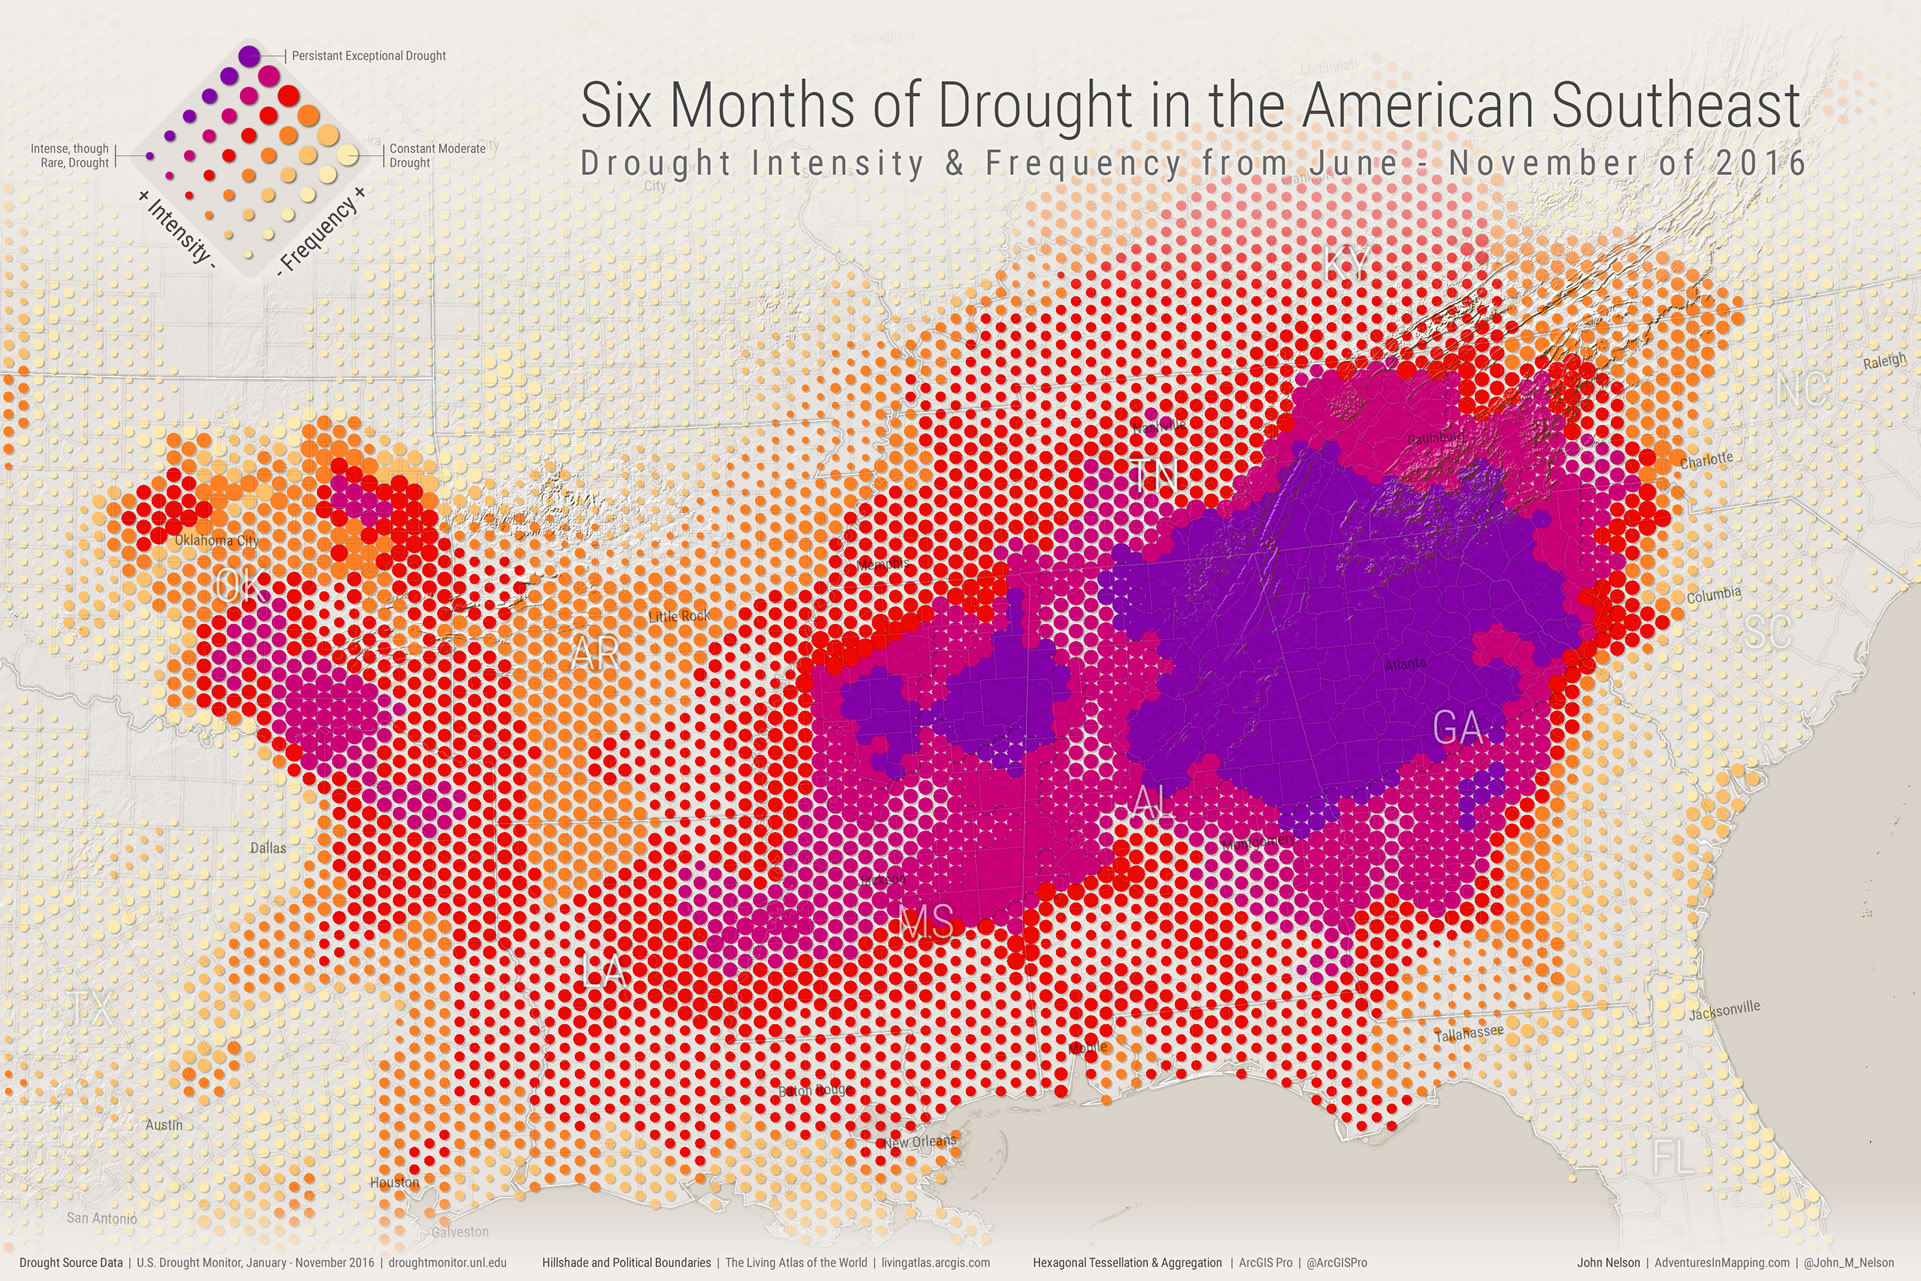 ArcGIS Pro Drought Monitor map